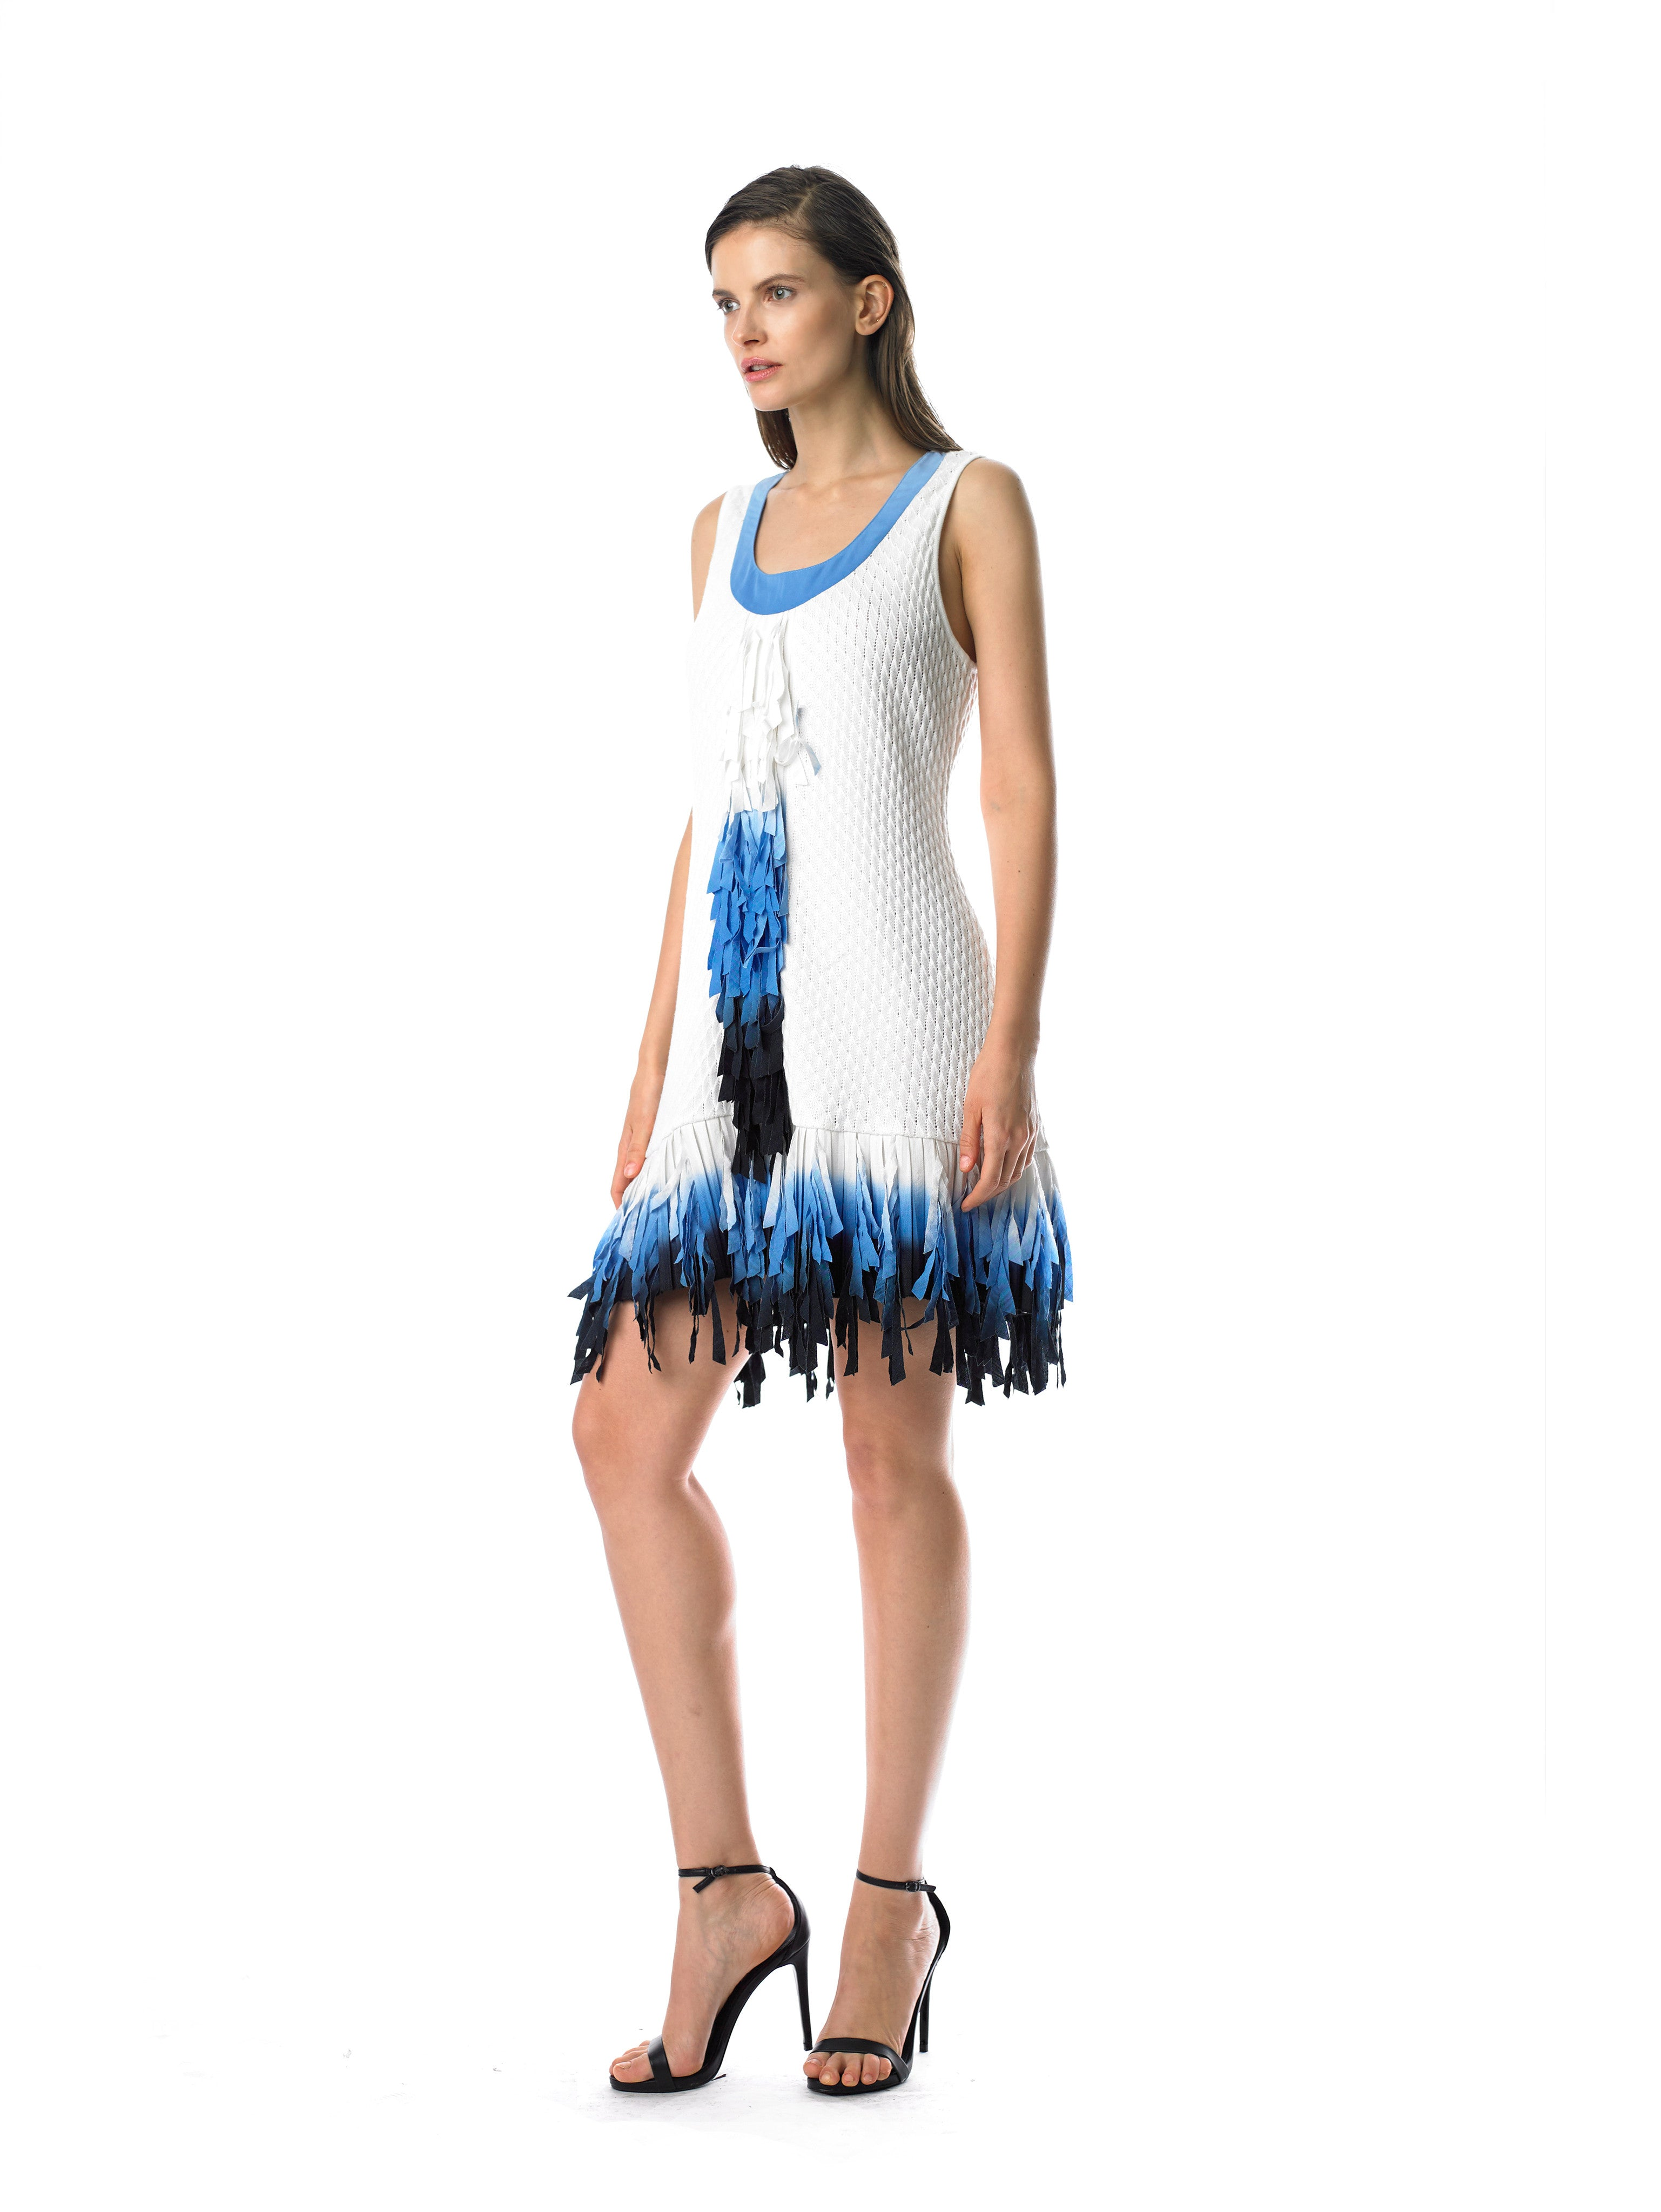 Historic New York Wave in Ocean Dress - Historic New York